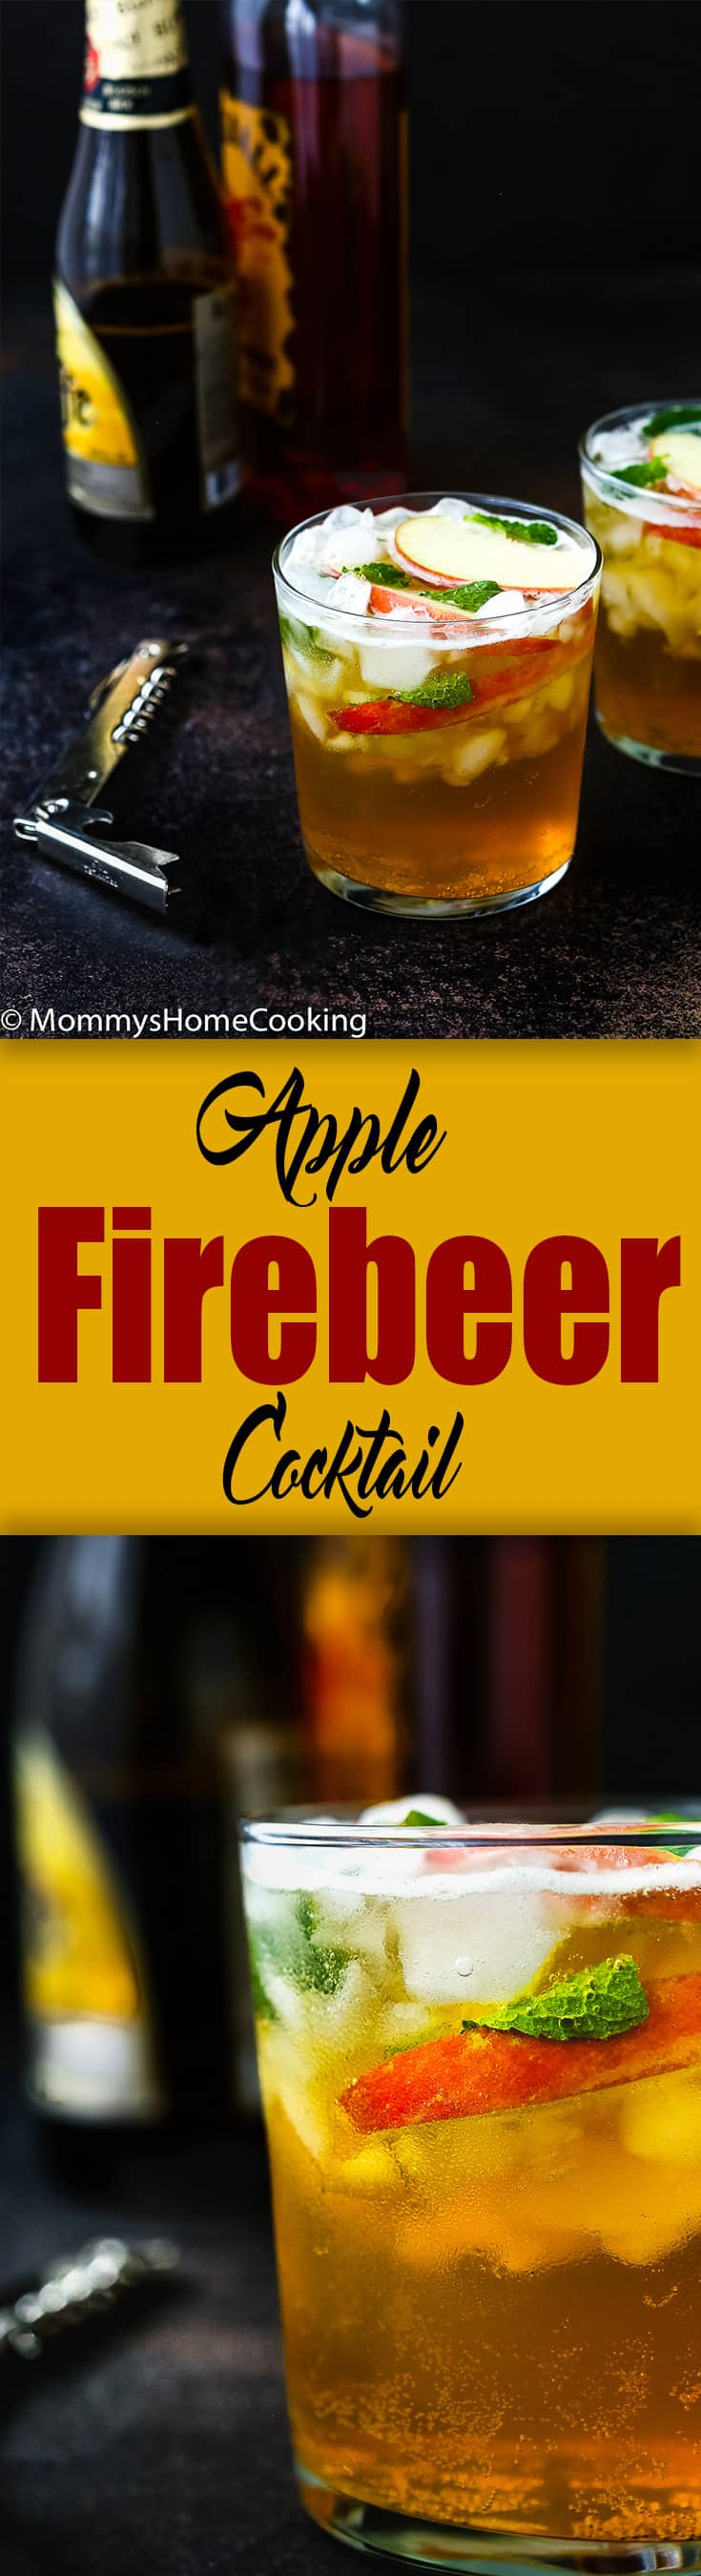 This effervescent Apple Firebeer Cocktail has a variety of flavors that will get party started. It's a deliciously easy cocktail that can be stirred up in seconds, with only 3 ingredients. http://mommyshomecooking.com